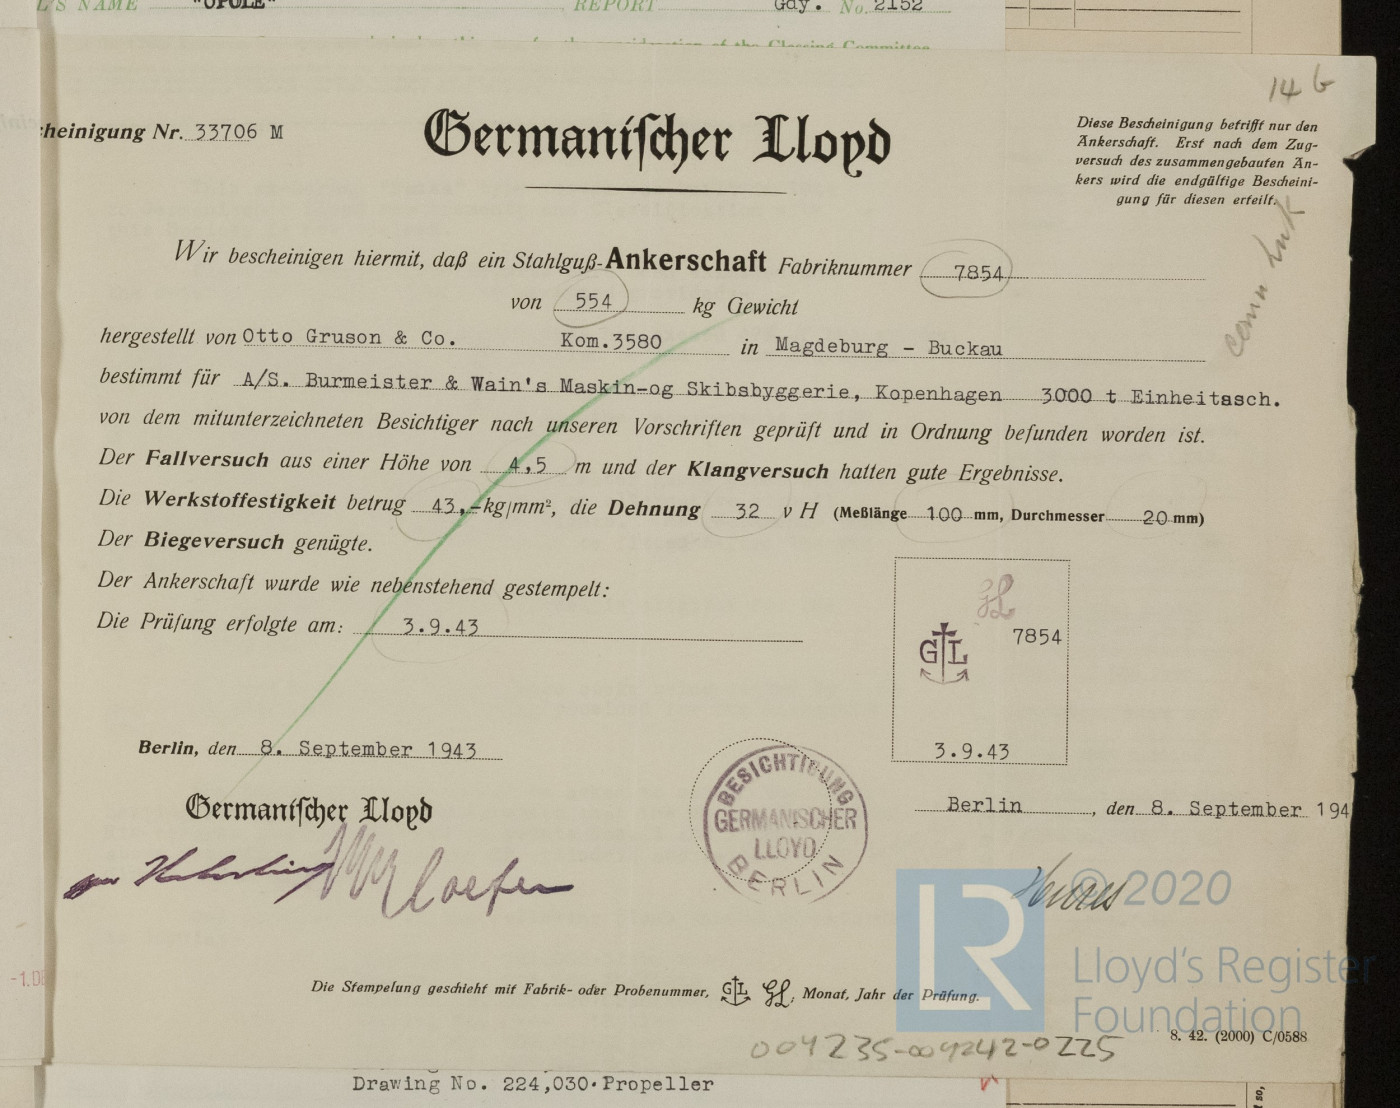 German language document